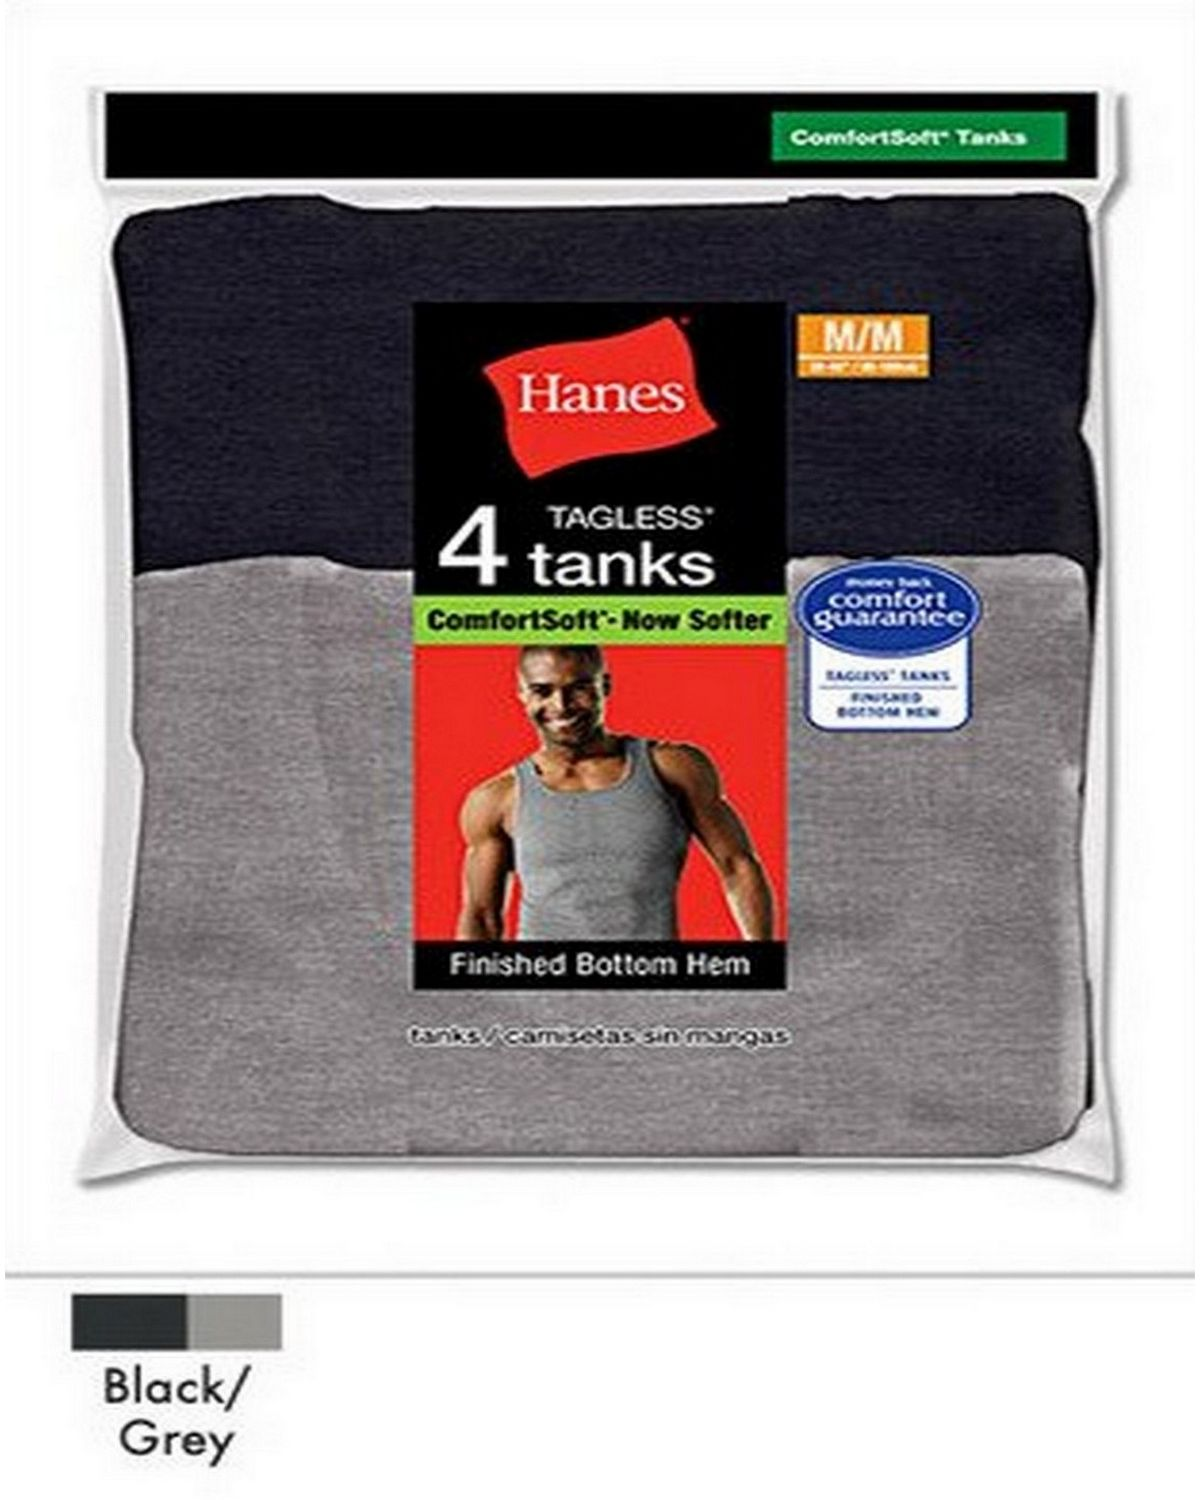 Hanes 392P4 Dyed Tank (Bk/Gry) - Assorted - XL 392P4